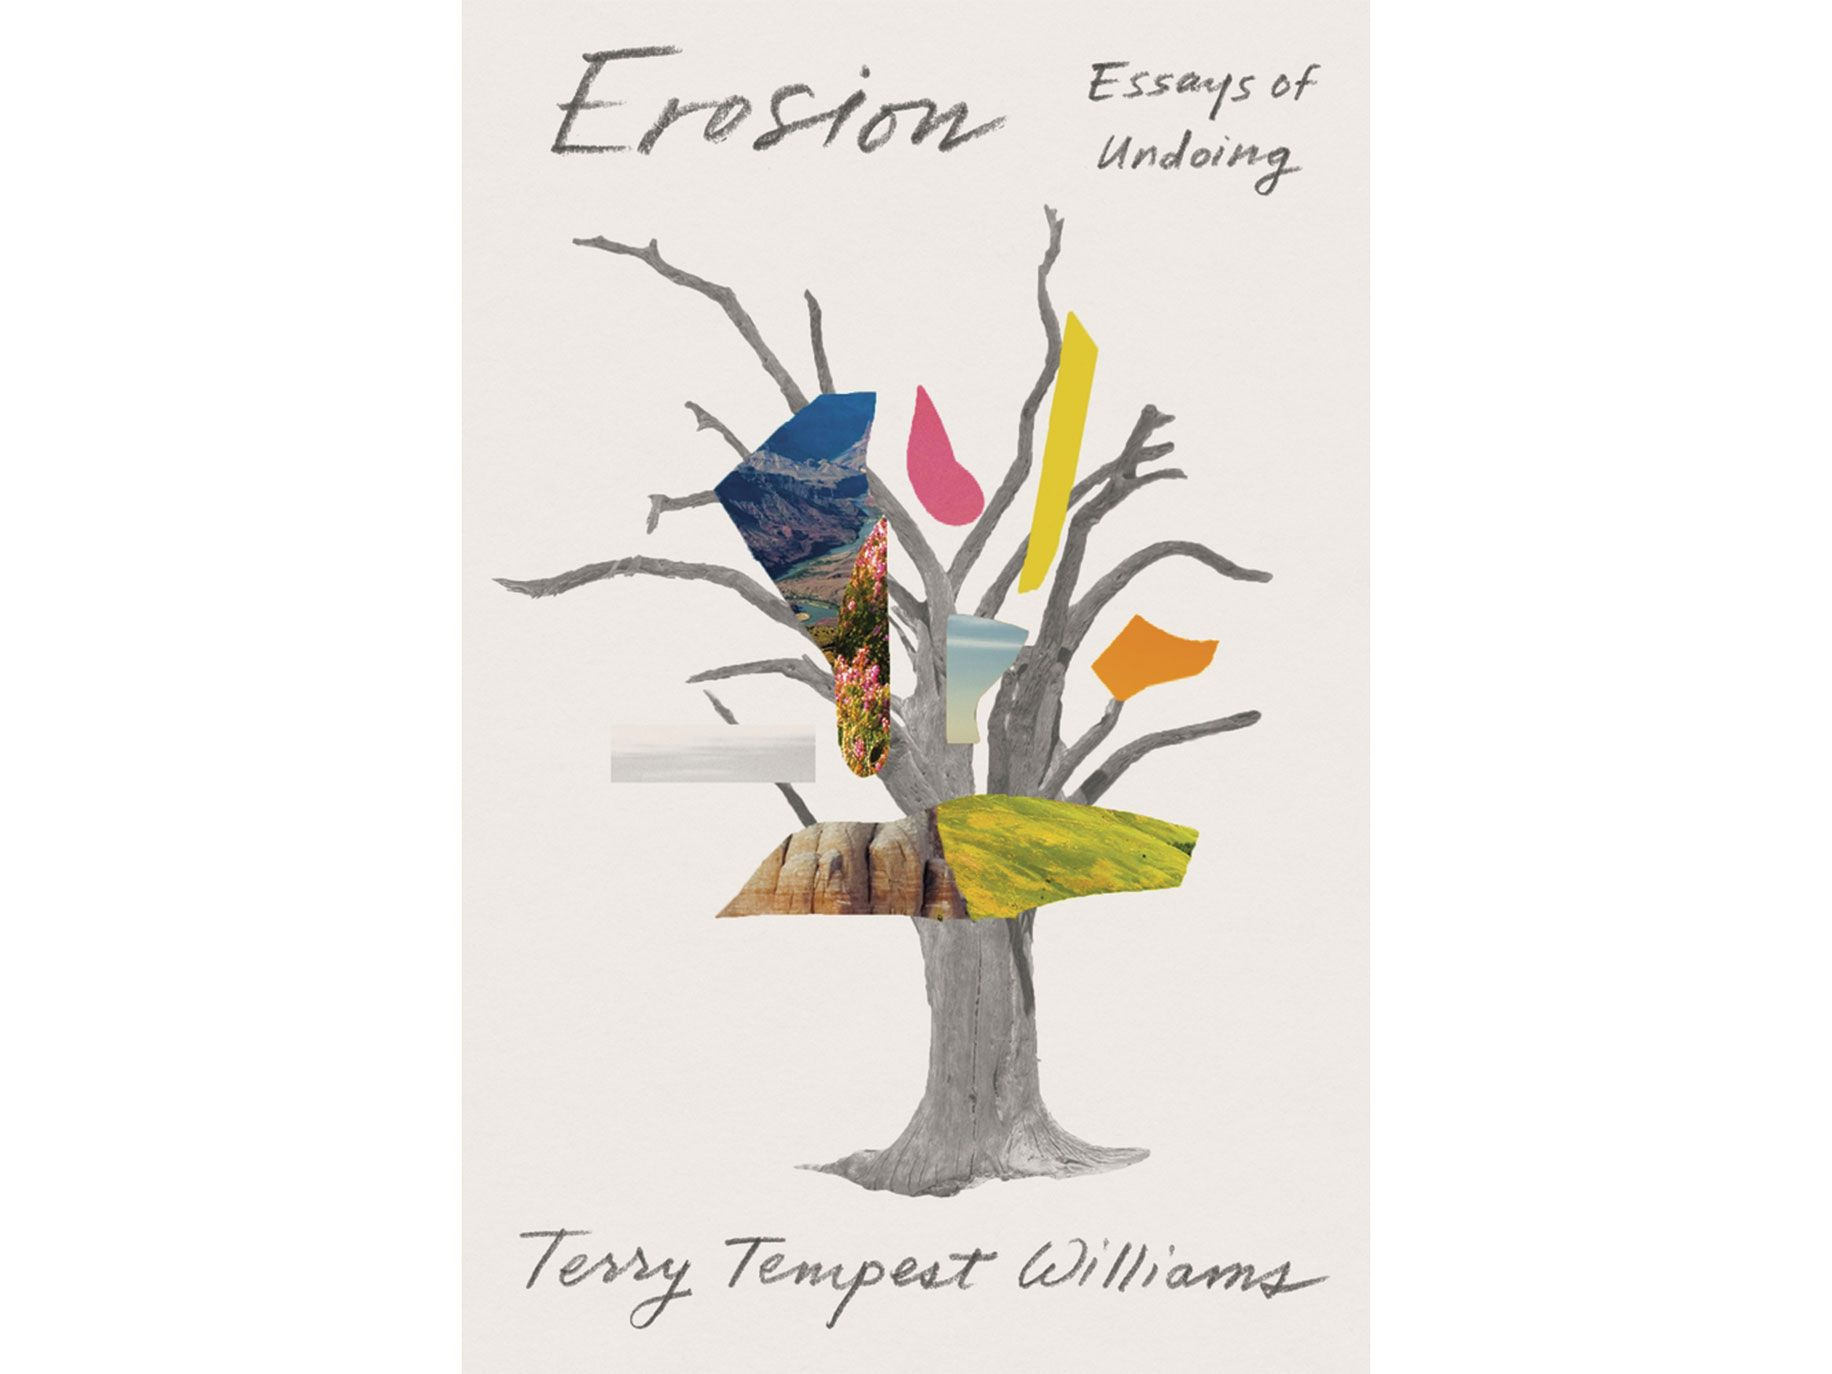 Erosion: Essays of Undoing by Terry Tempest Williams, Farrar, Straus and Giroux/Sarah Crichton Books, 336 pages, $27